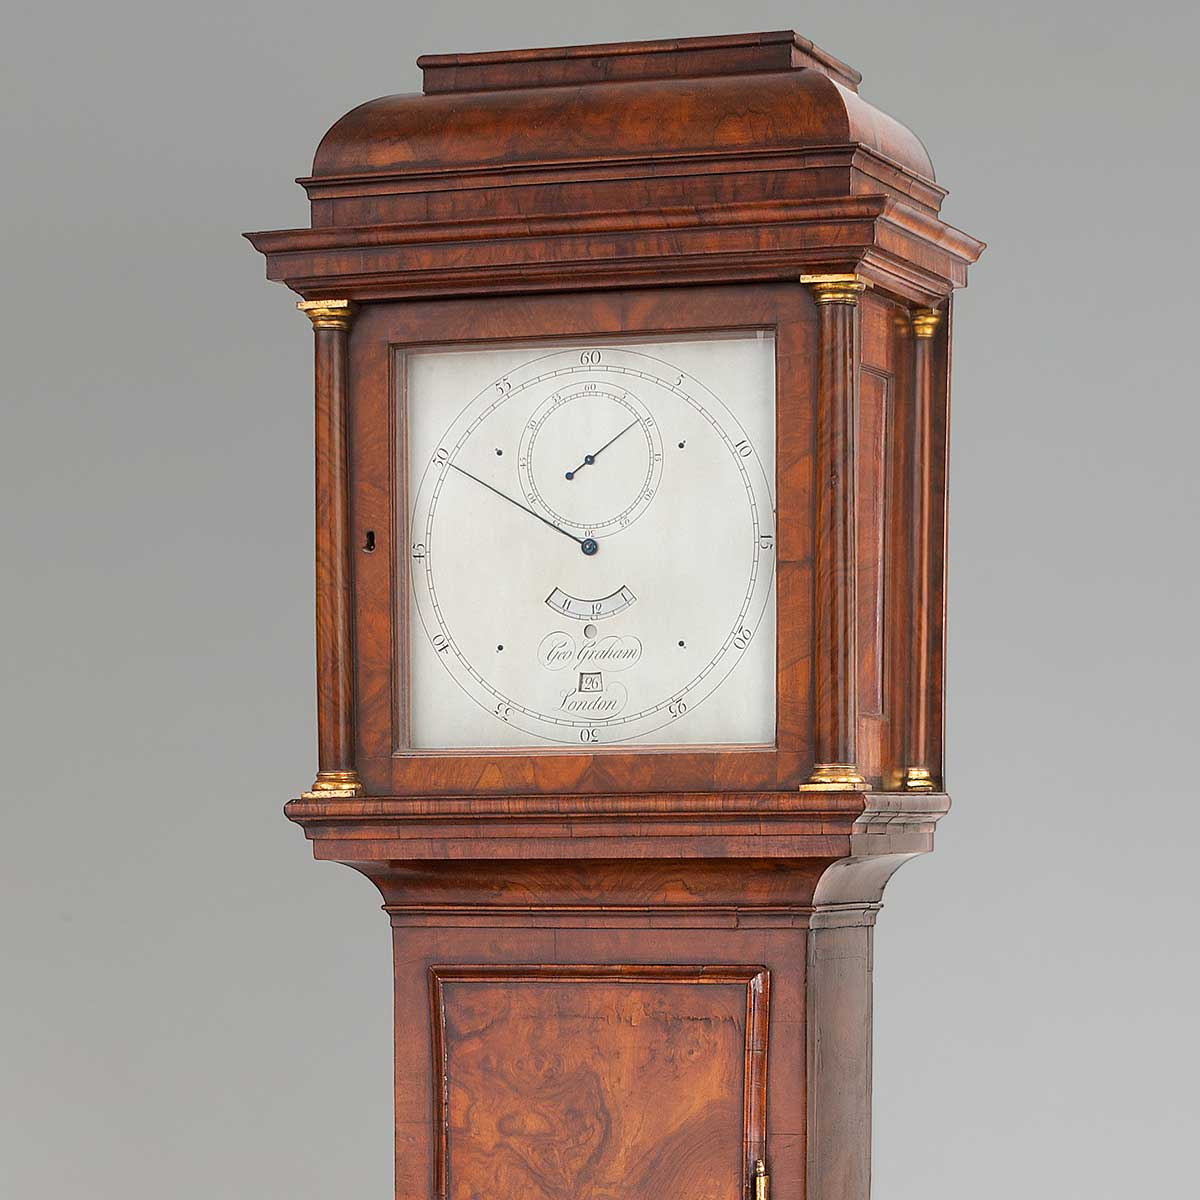 George Graham regulator clock with deadbeat escapement